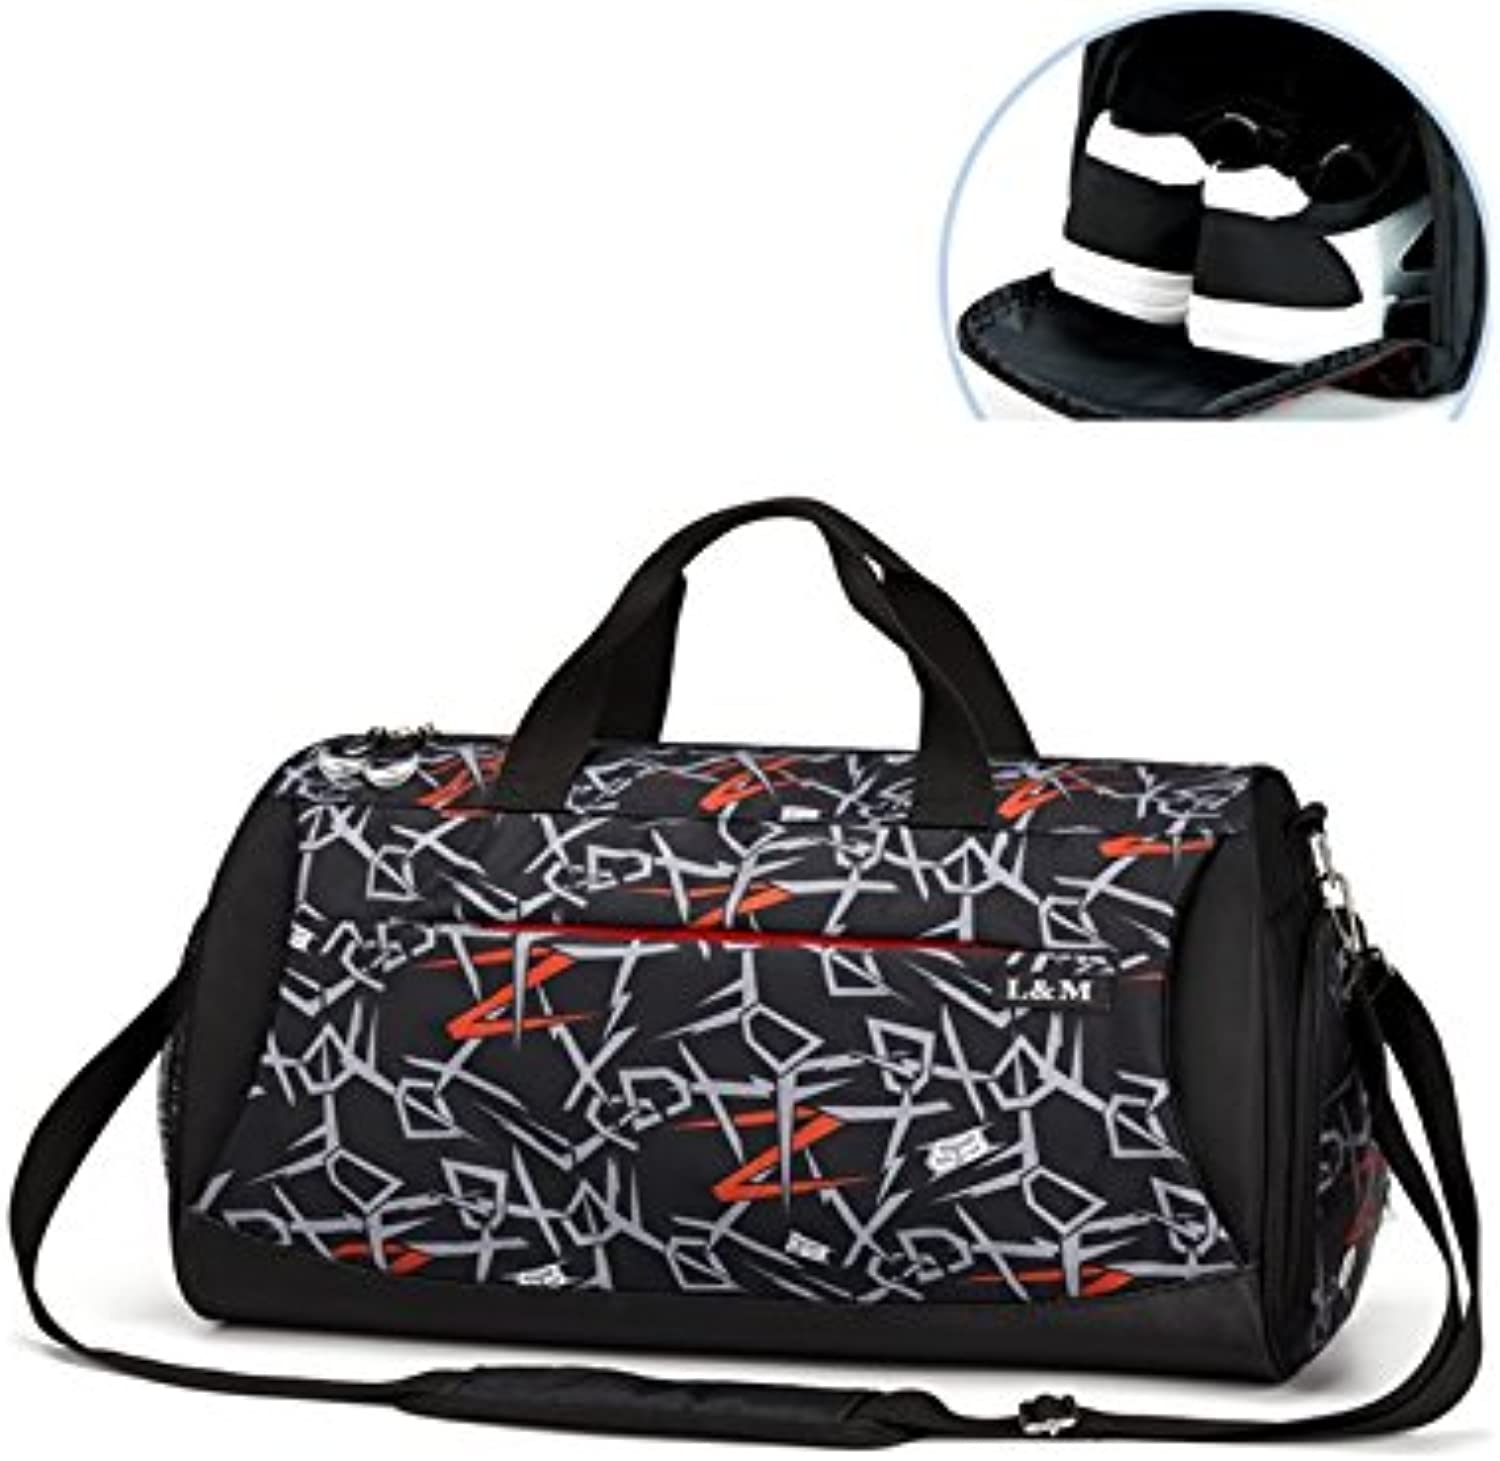 Hiking Outdoor Large Capacity Gym Bag Sports Holdall Travel Weekender Duffel Bag with shoes Compartment(Geometric Black) for Outdoor Traveling